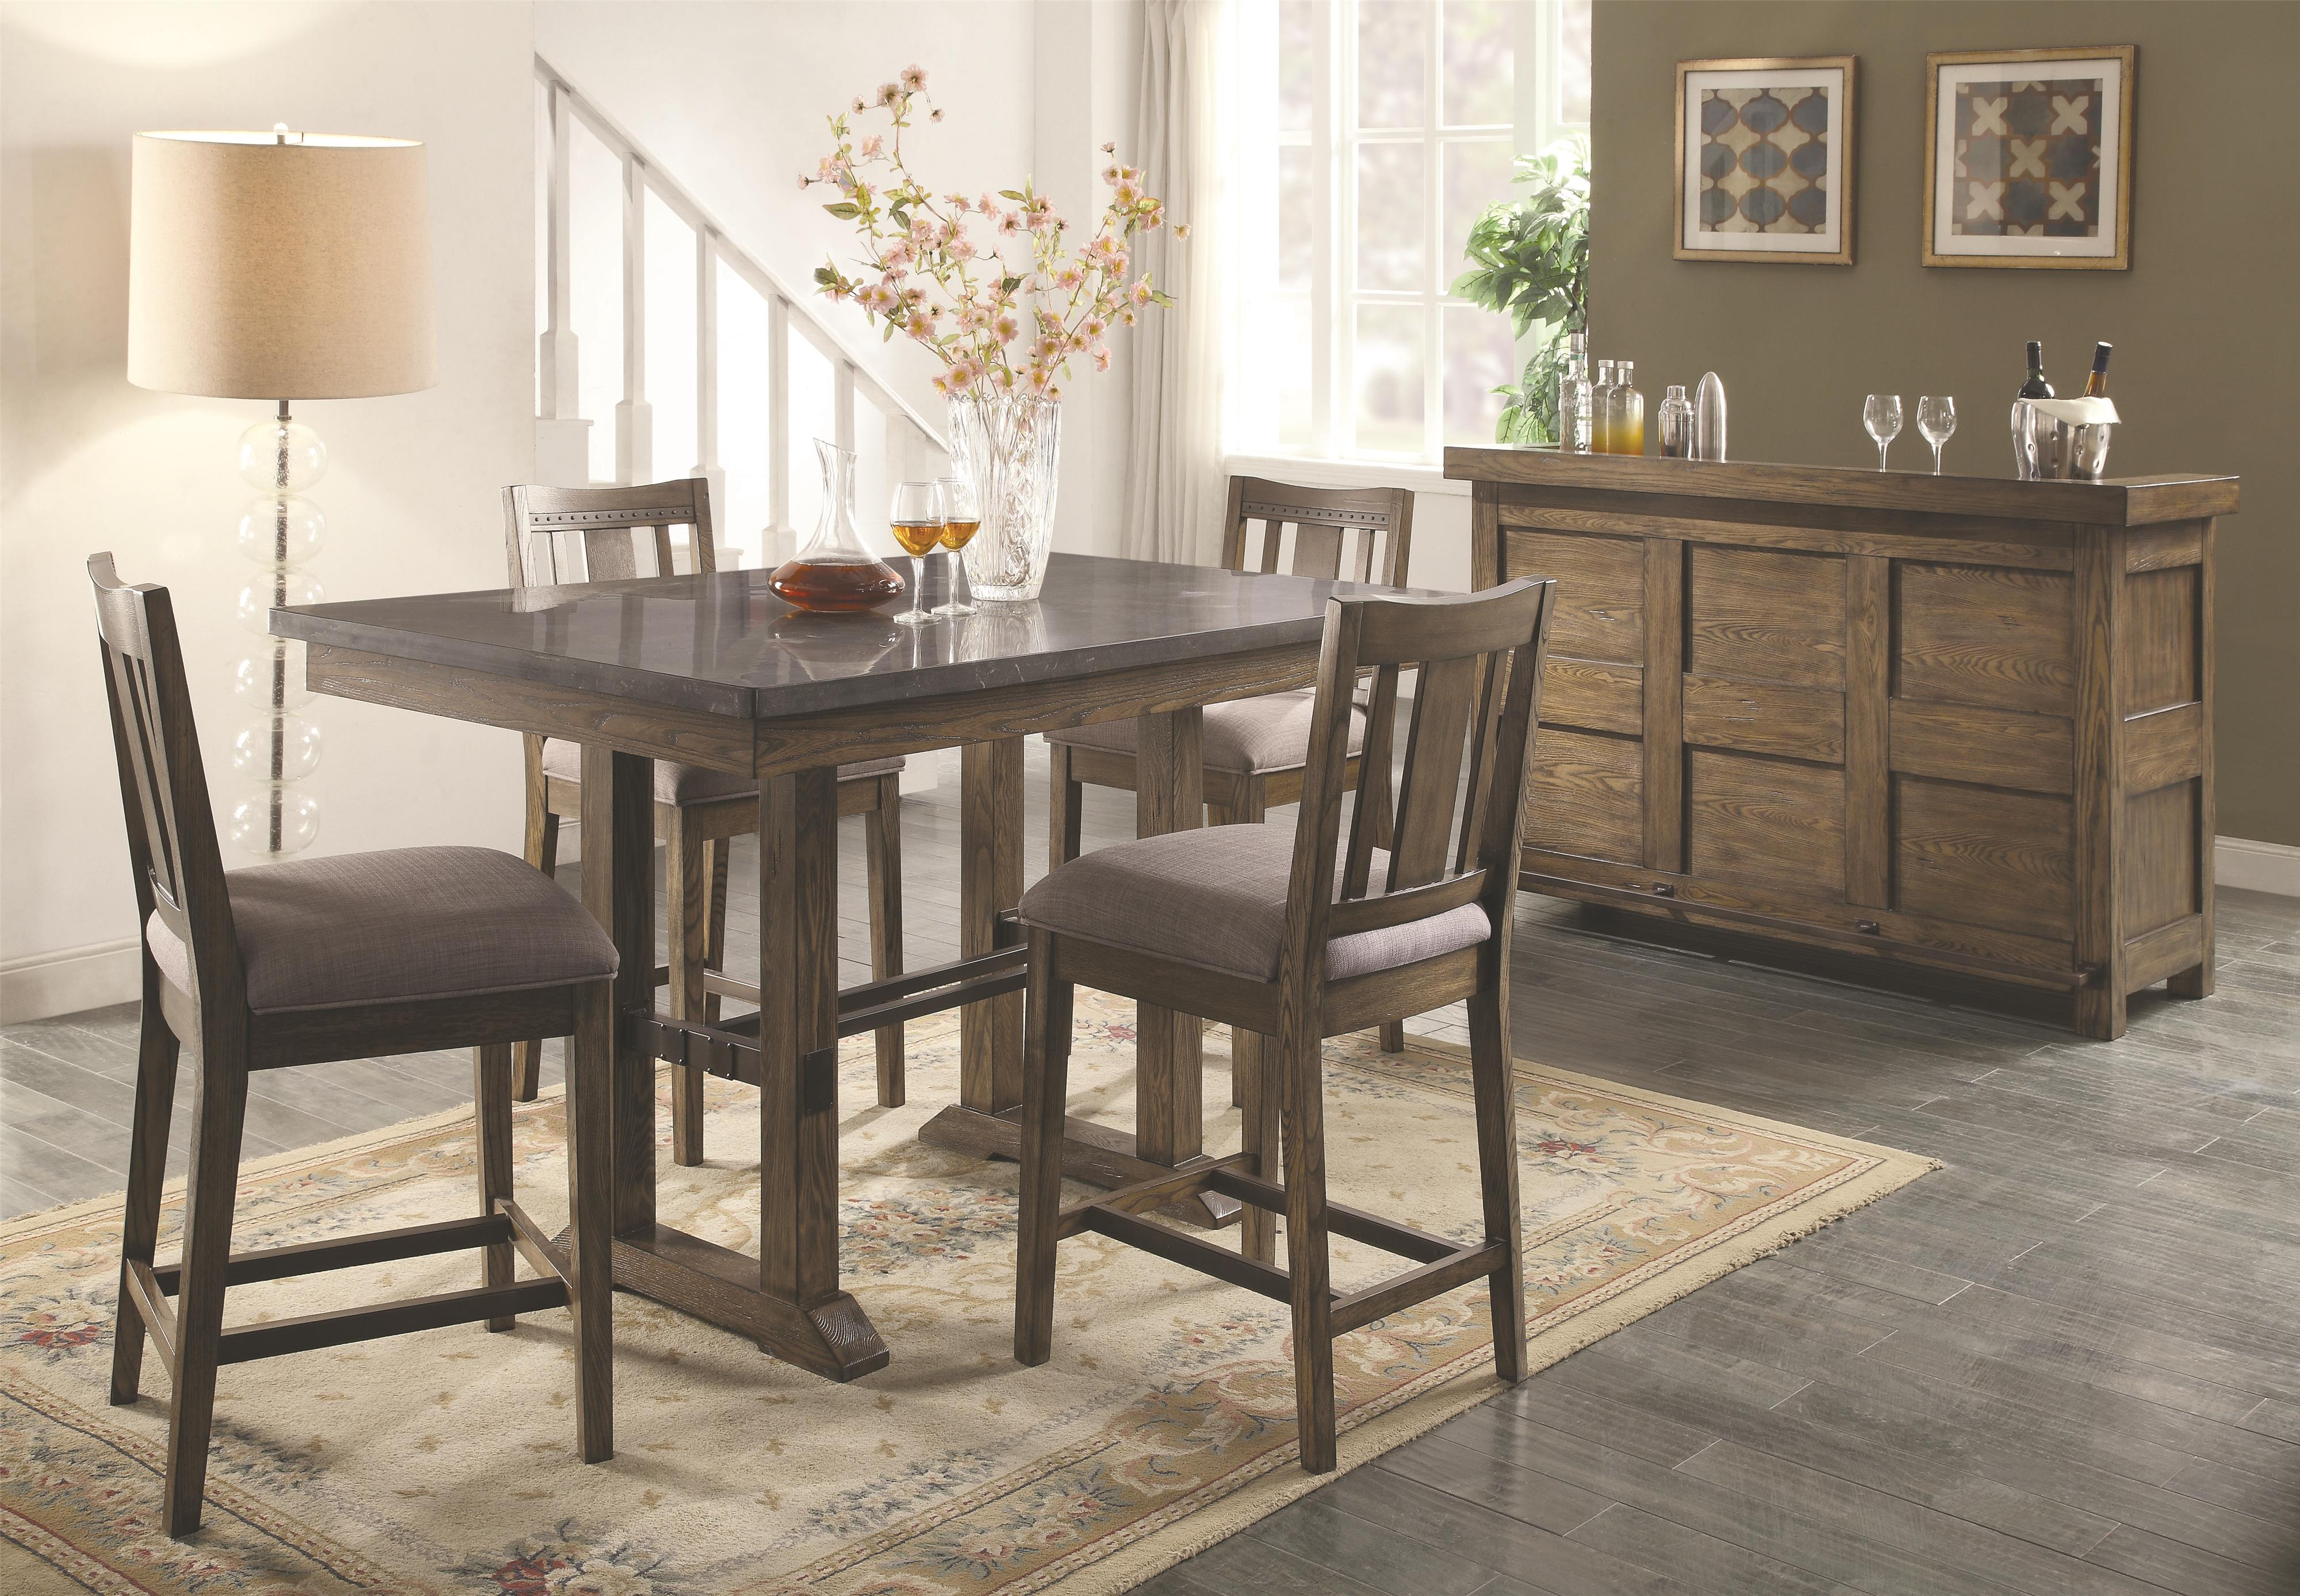 Coaster Willowbrook Rustic Industrial Round Dining Table with ...